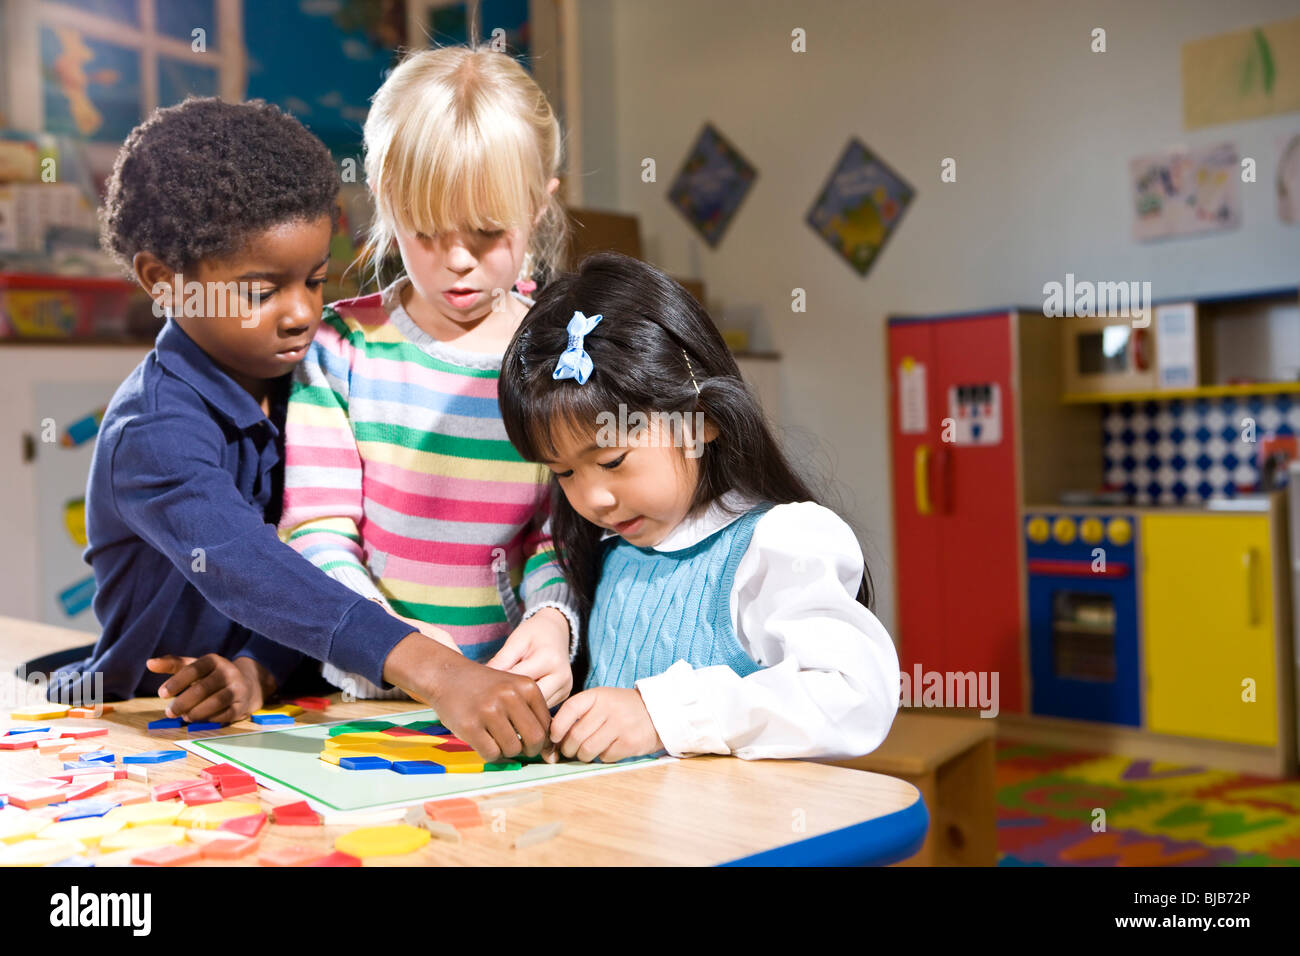 Three Preschool Children Working Together On Colorful